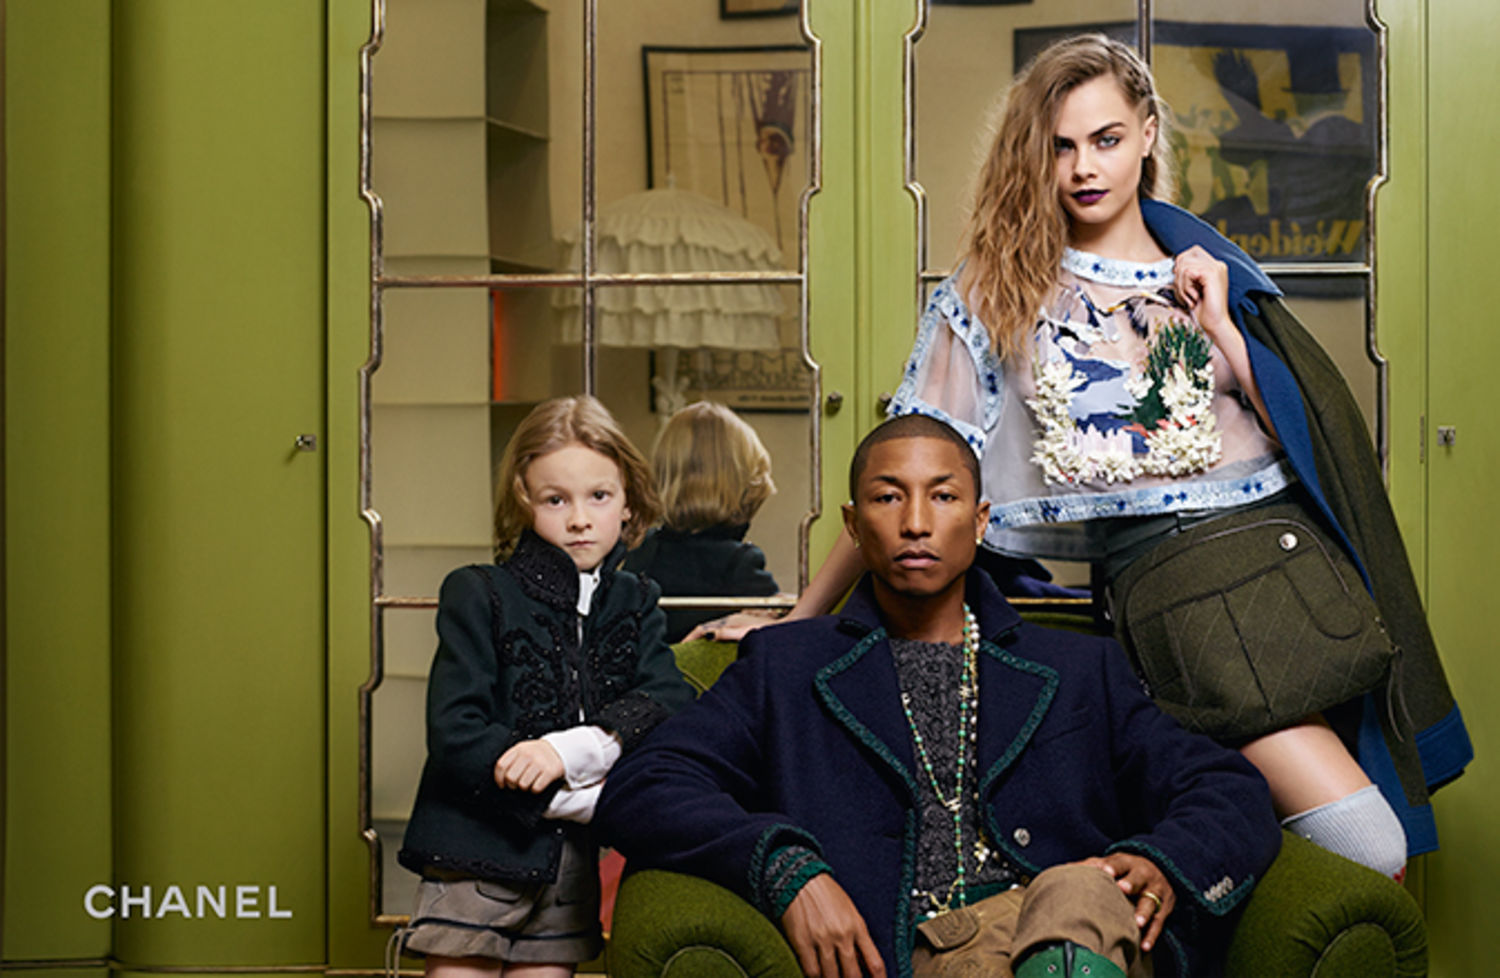 Pharrell Williams & Cara Delevinge for Chanel Pre-Fall 2015-4